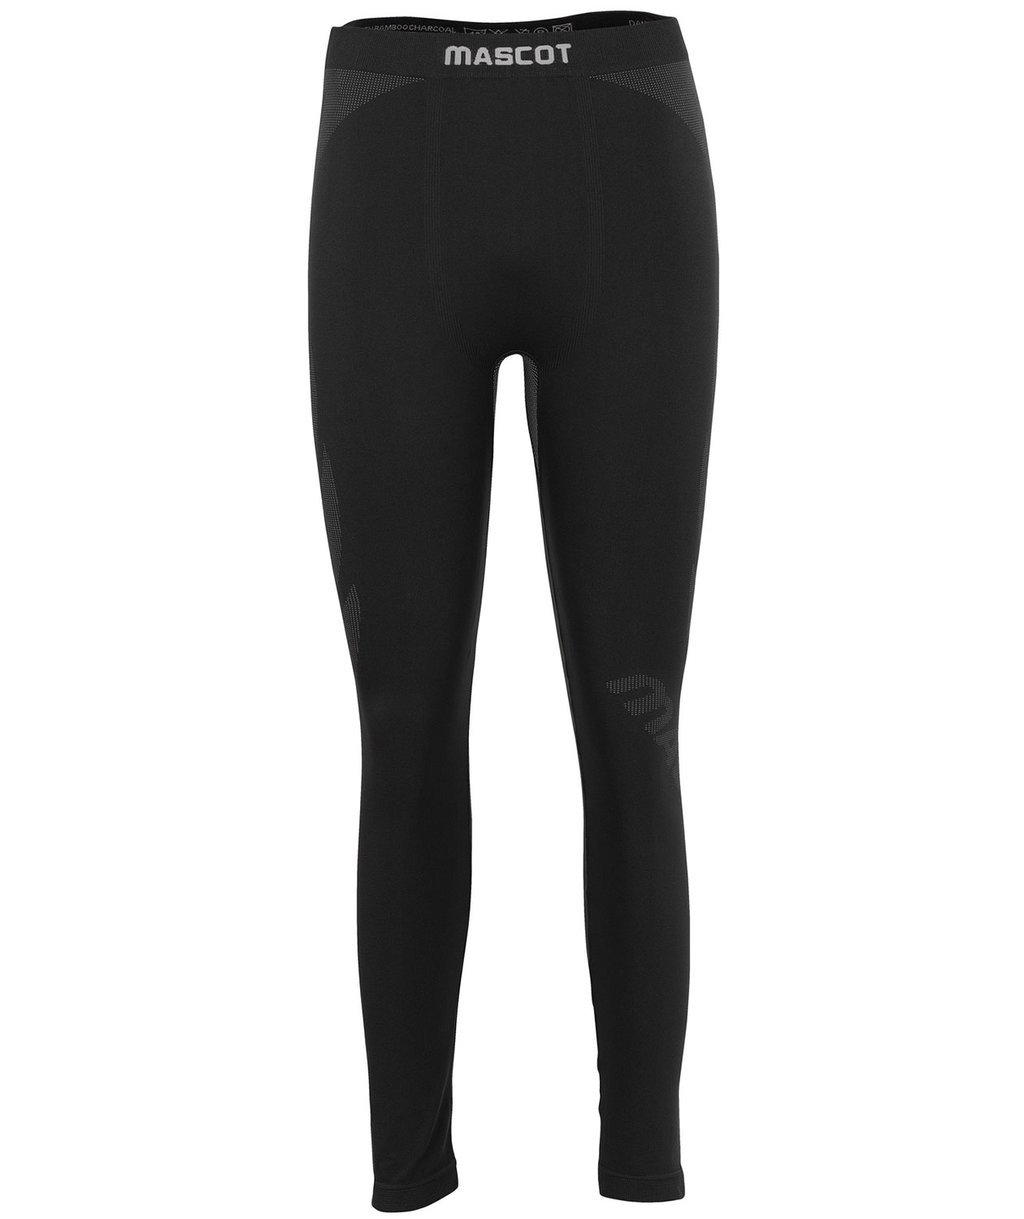 Mascot Crossover Segura thermal long johns, Dark Anthracite